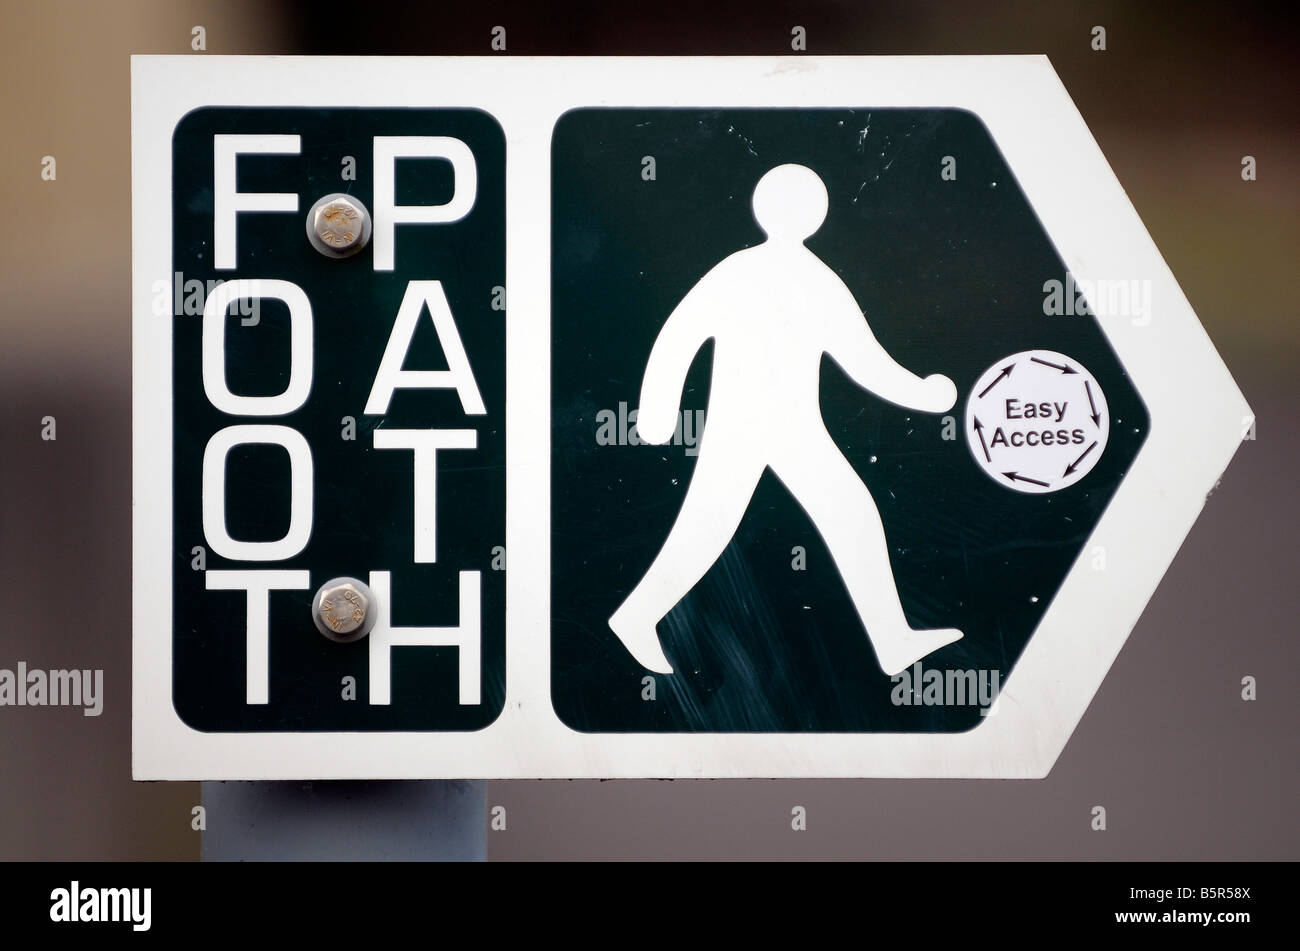 footpath sign - Stock Image